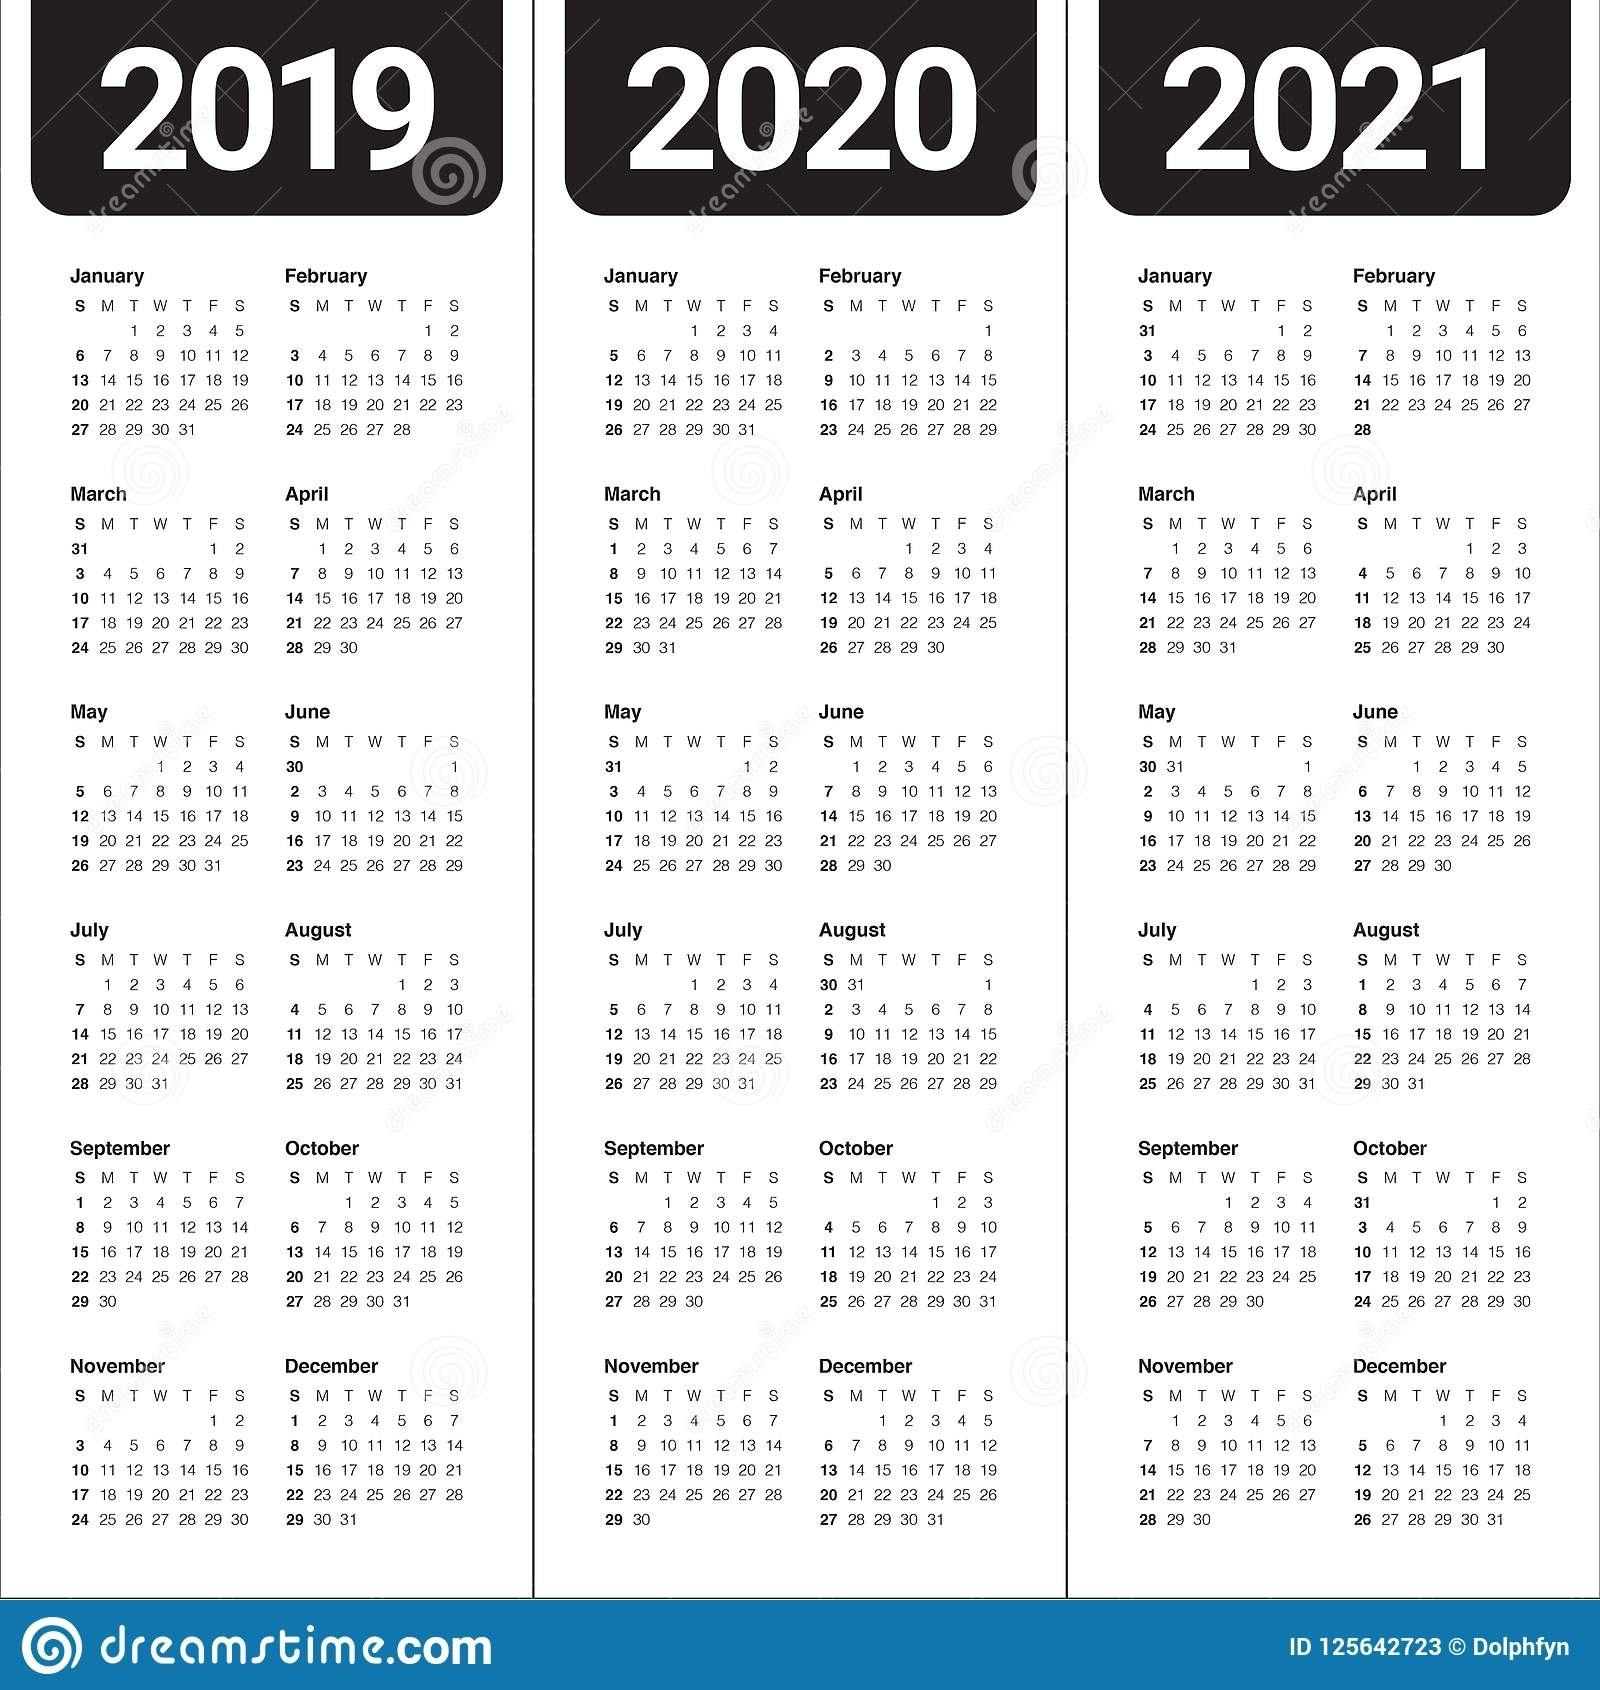 Year 2019 2020 2021 Calendar Vector Design Template Stock Vector within Free Yearly 2019, 2020 2021 Calendar